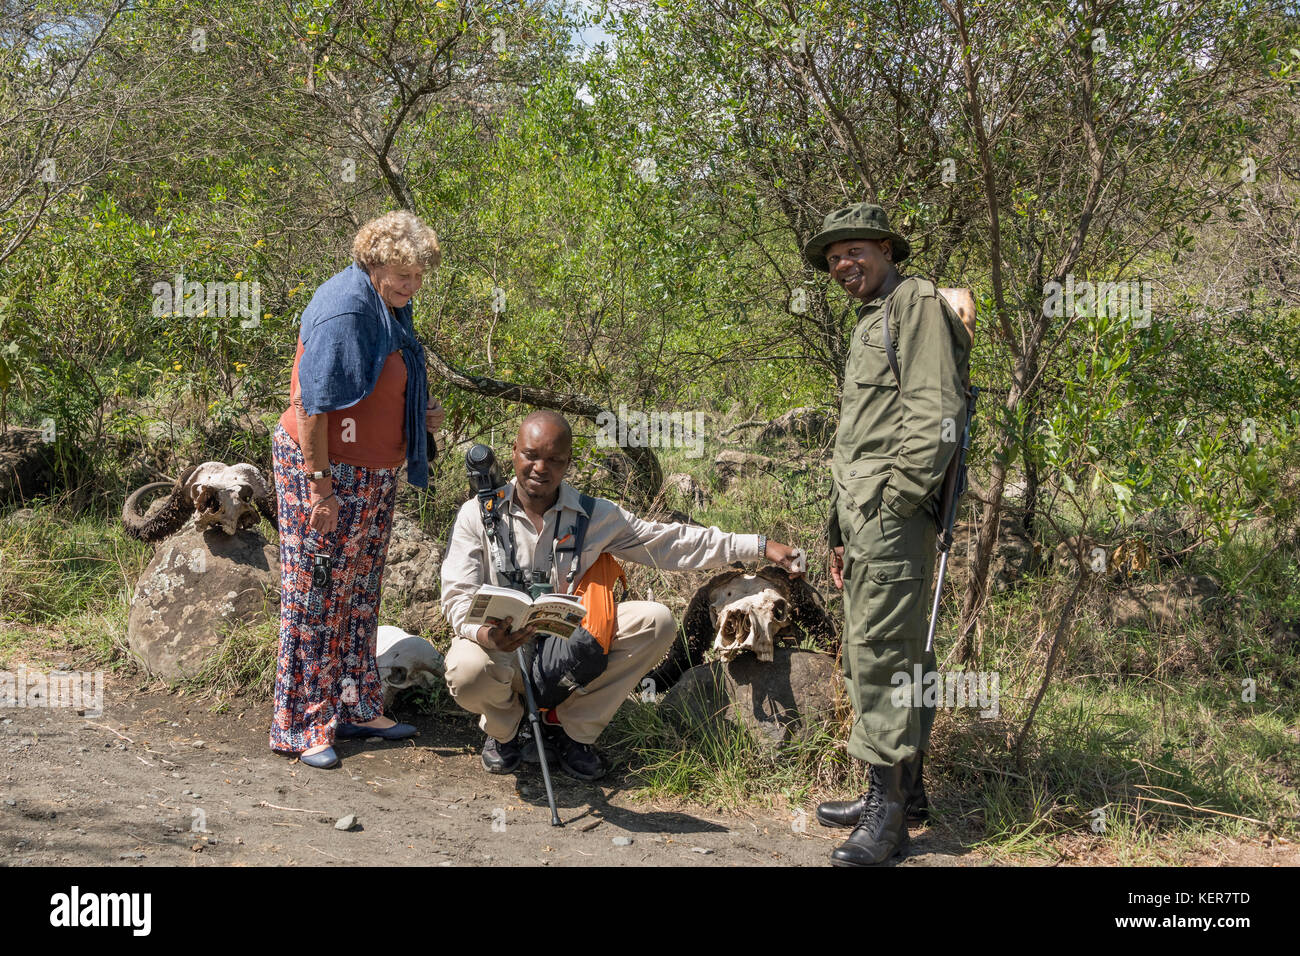 Guide and tourist examining buffalo skulls with a ranger 3, Arusha NP, Tanzania - Stock Image